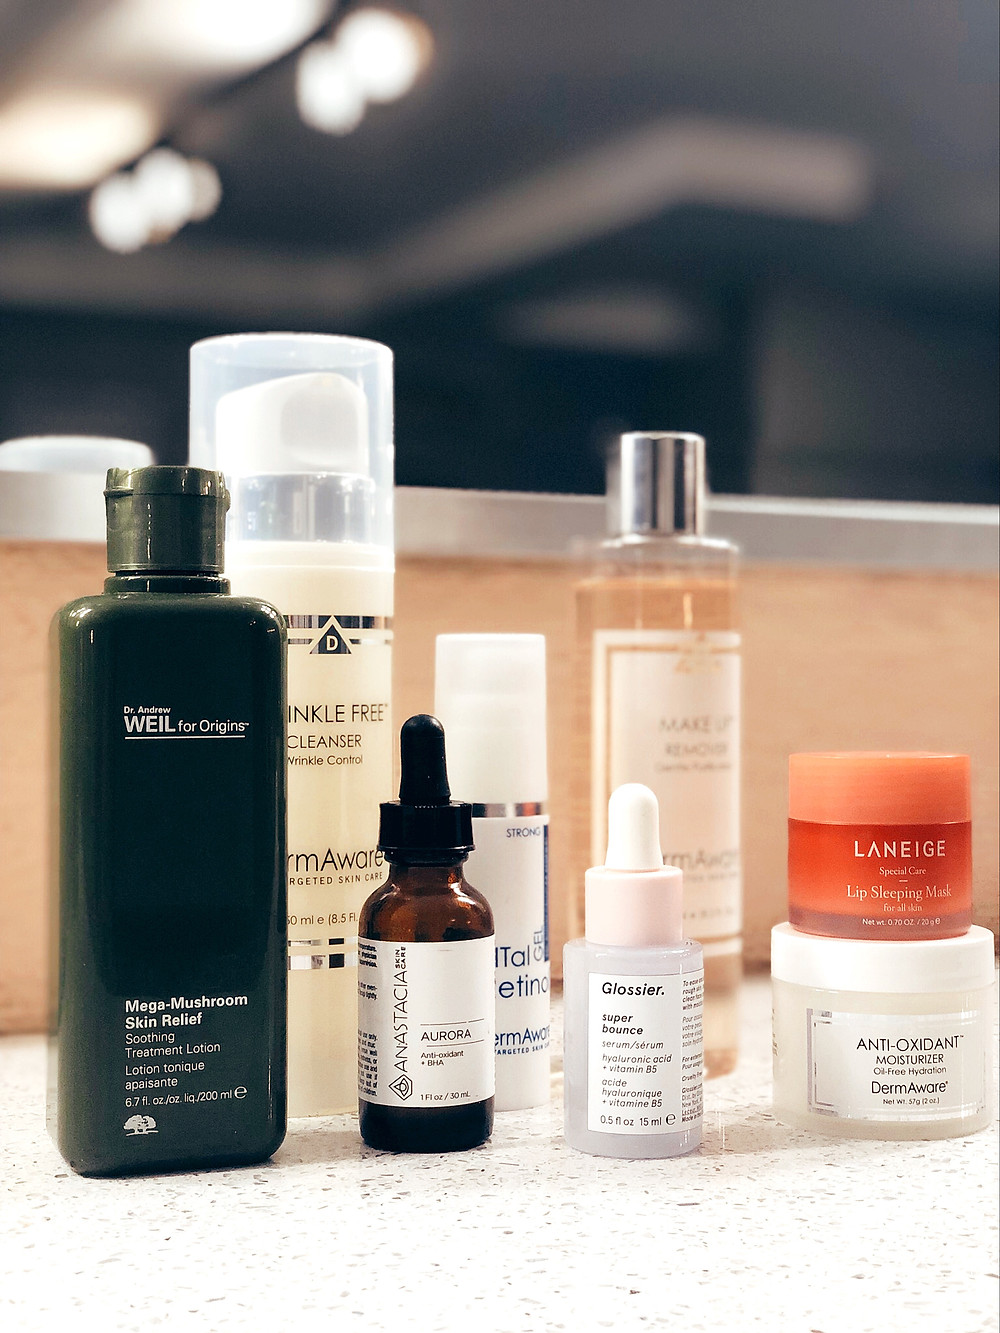 Detail shot of skin care products including Glossier  super bounce and Dr Andrew Weil Mega-Mushroom Skin Relief.